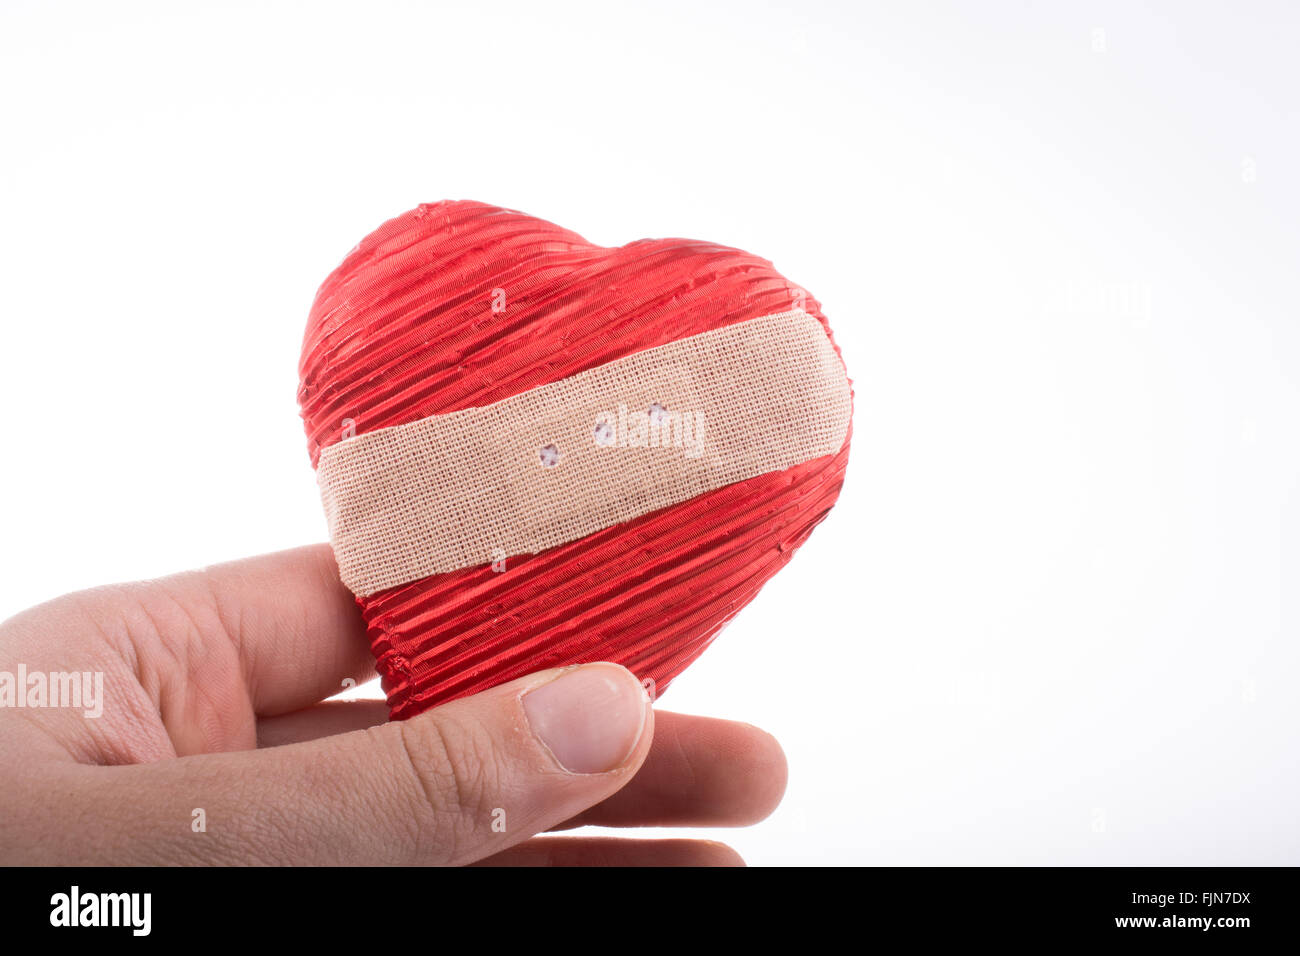 Hand Holding A Hurt Heart With Plaster In Hand On White Background